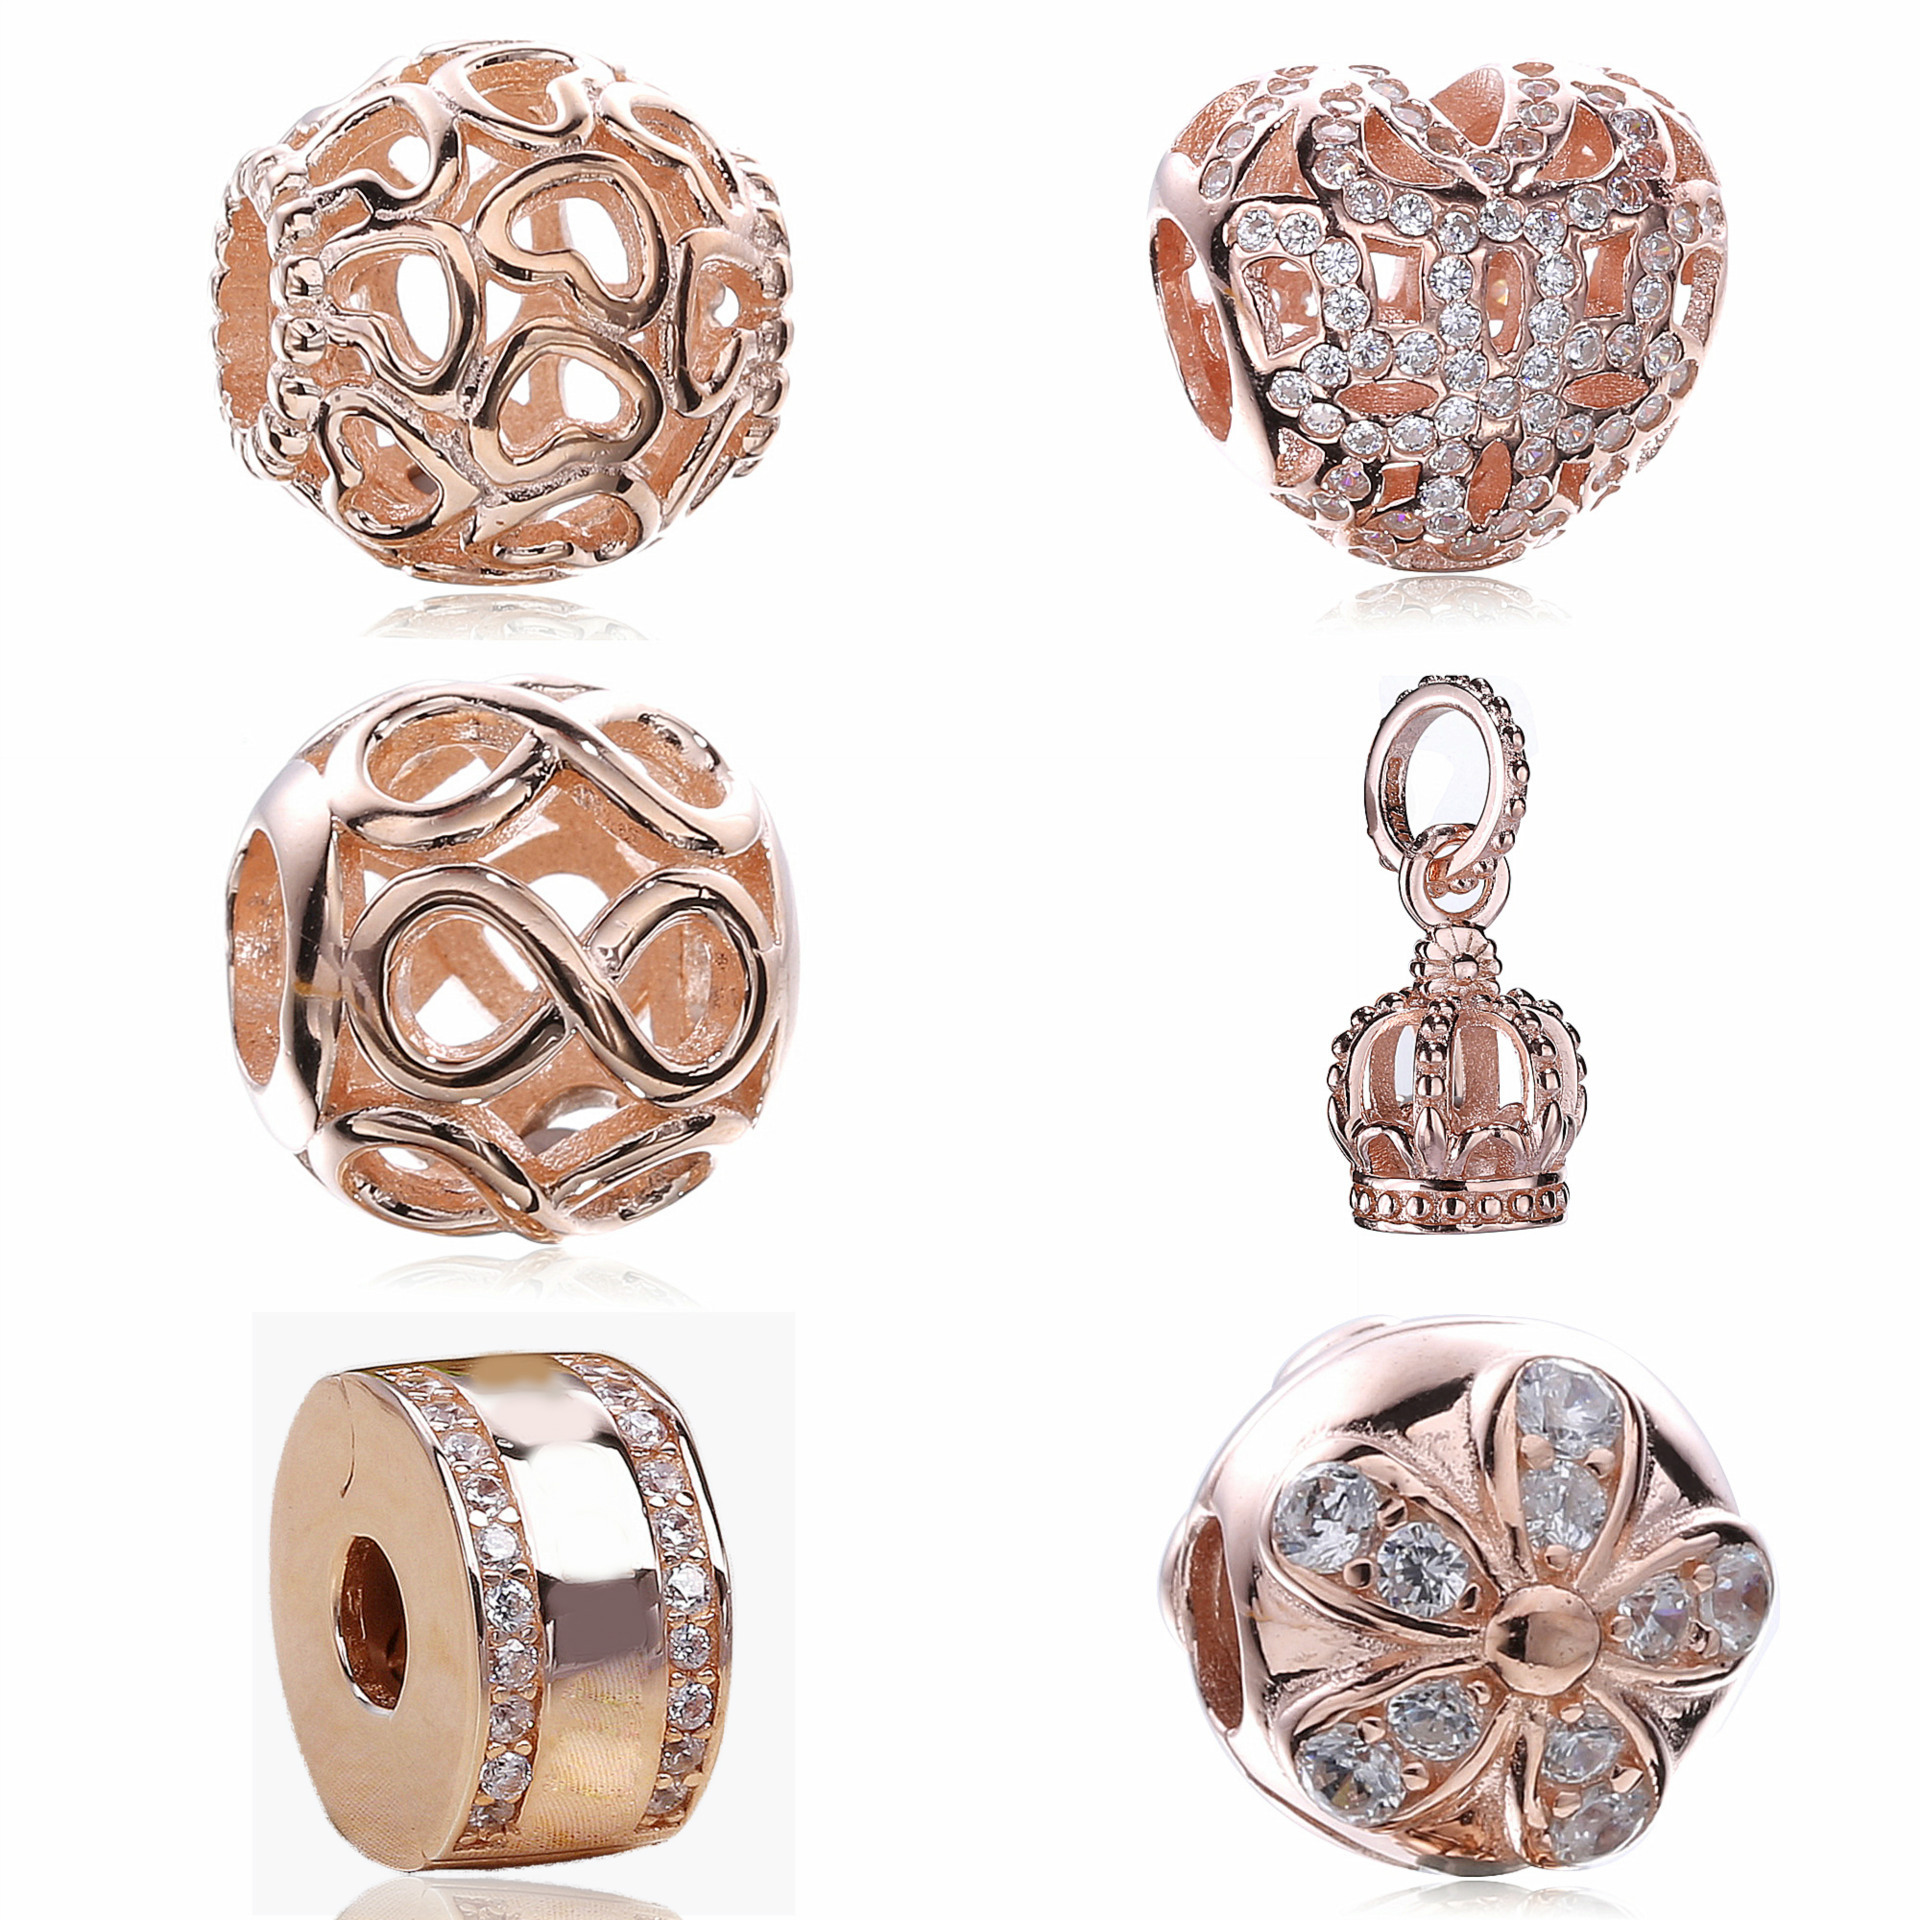 Gold Charm Bracelet Charms: Authentic 925 Sterling Silver Jewelry Rose Gold Color